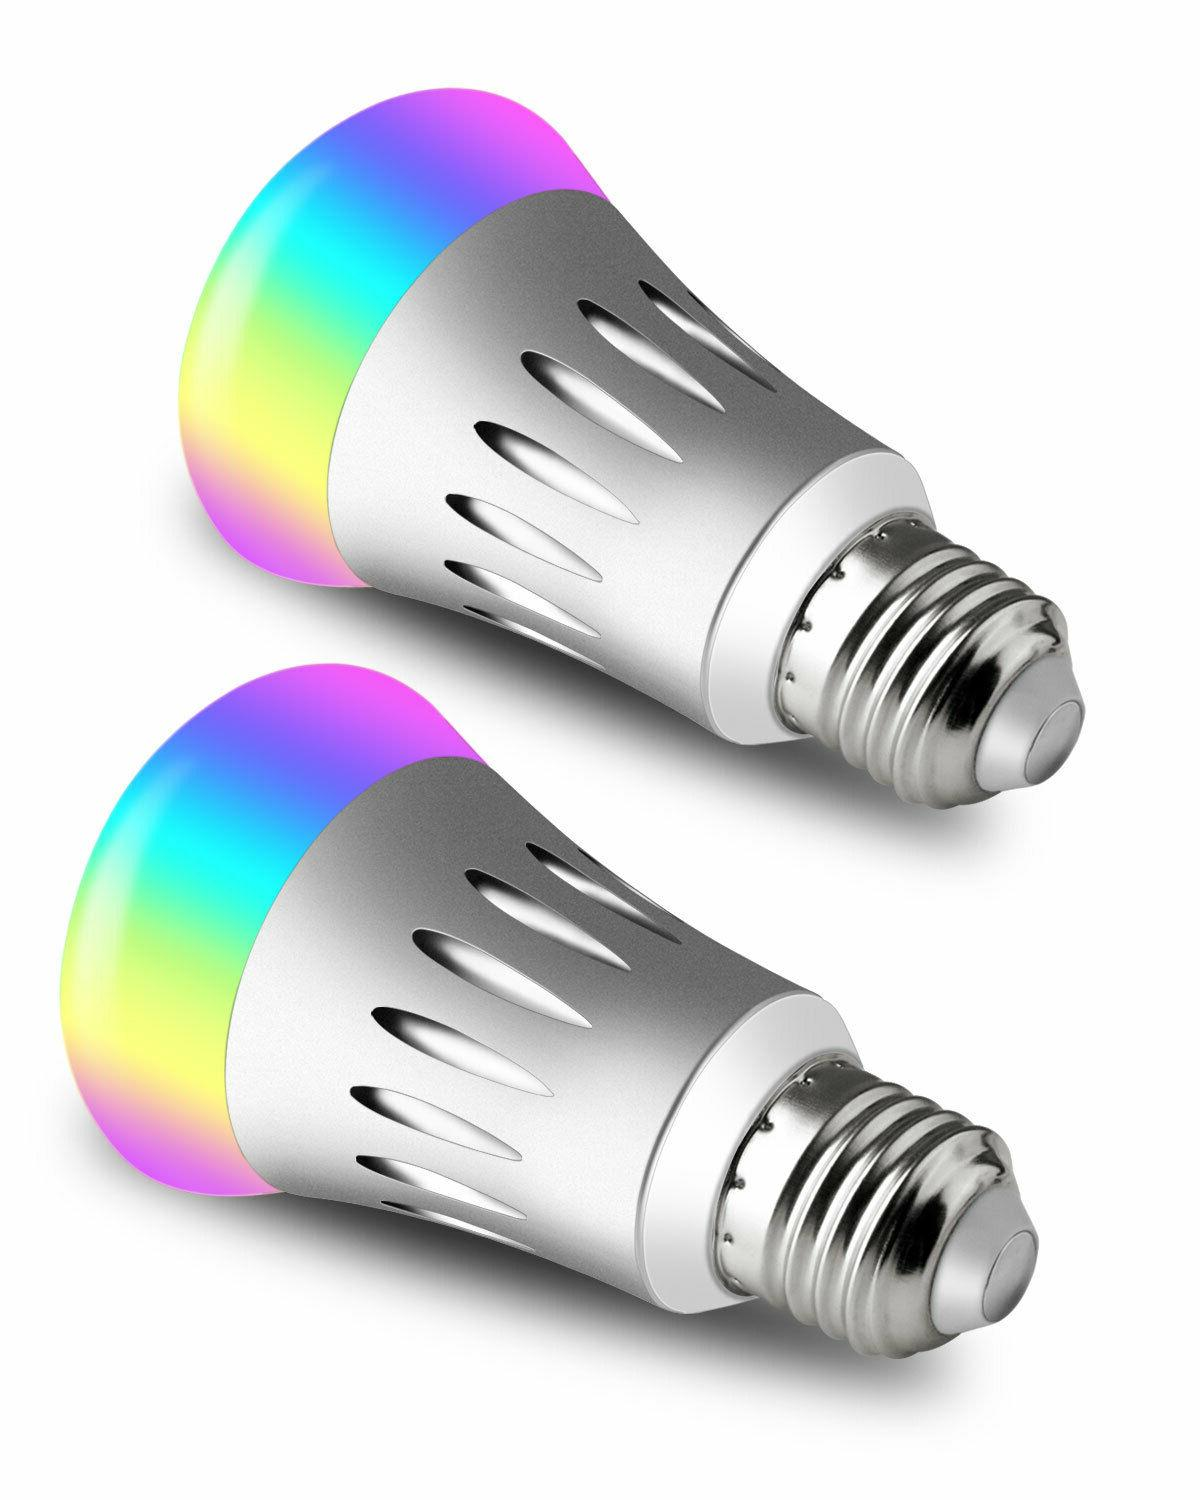 WiFi Dimmable Switch LED Lamp For Google Home /Alexa/IFTTT